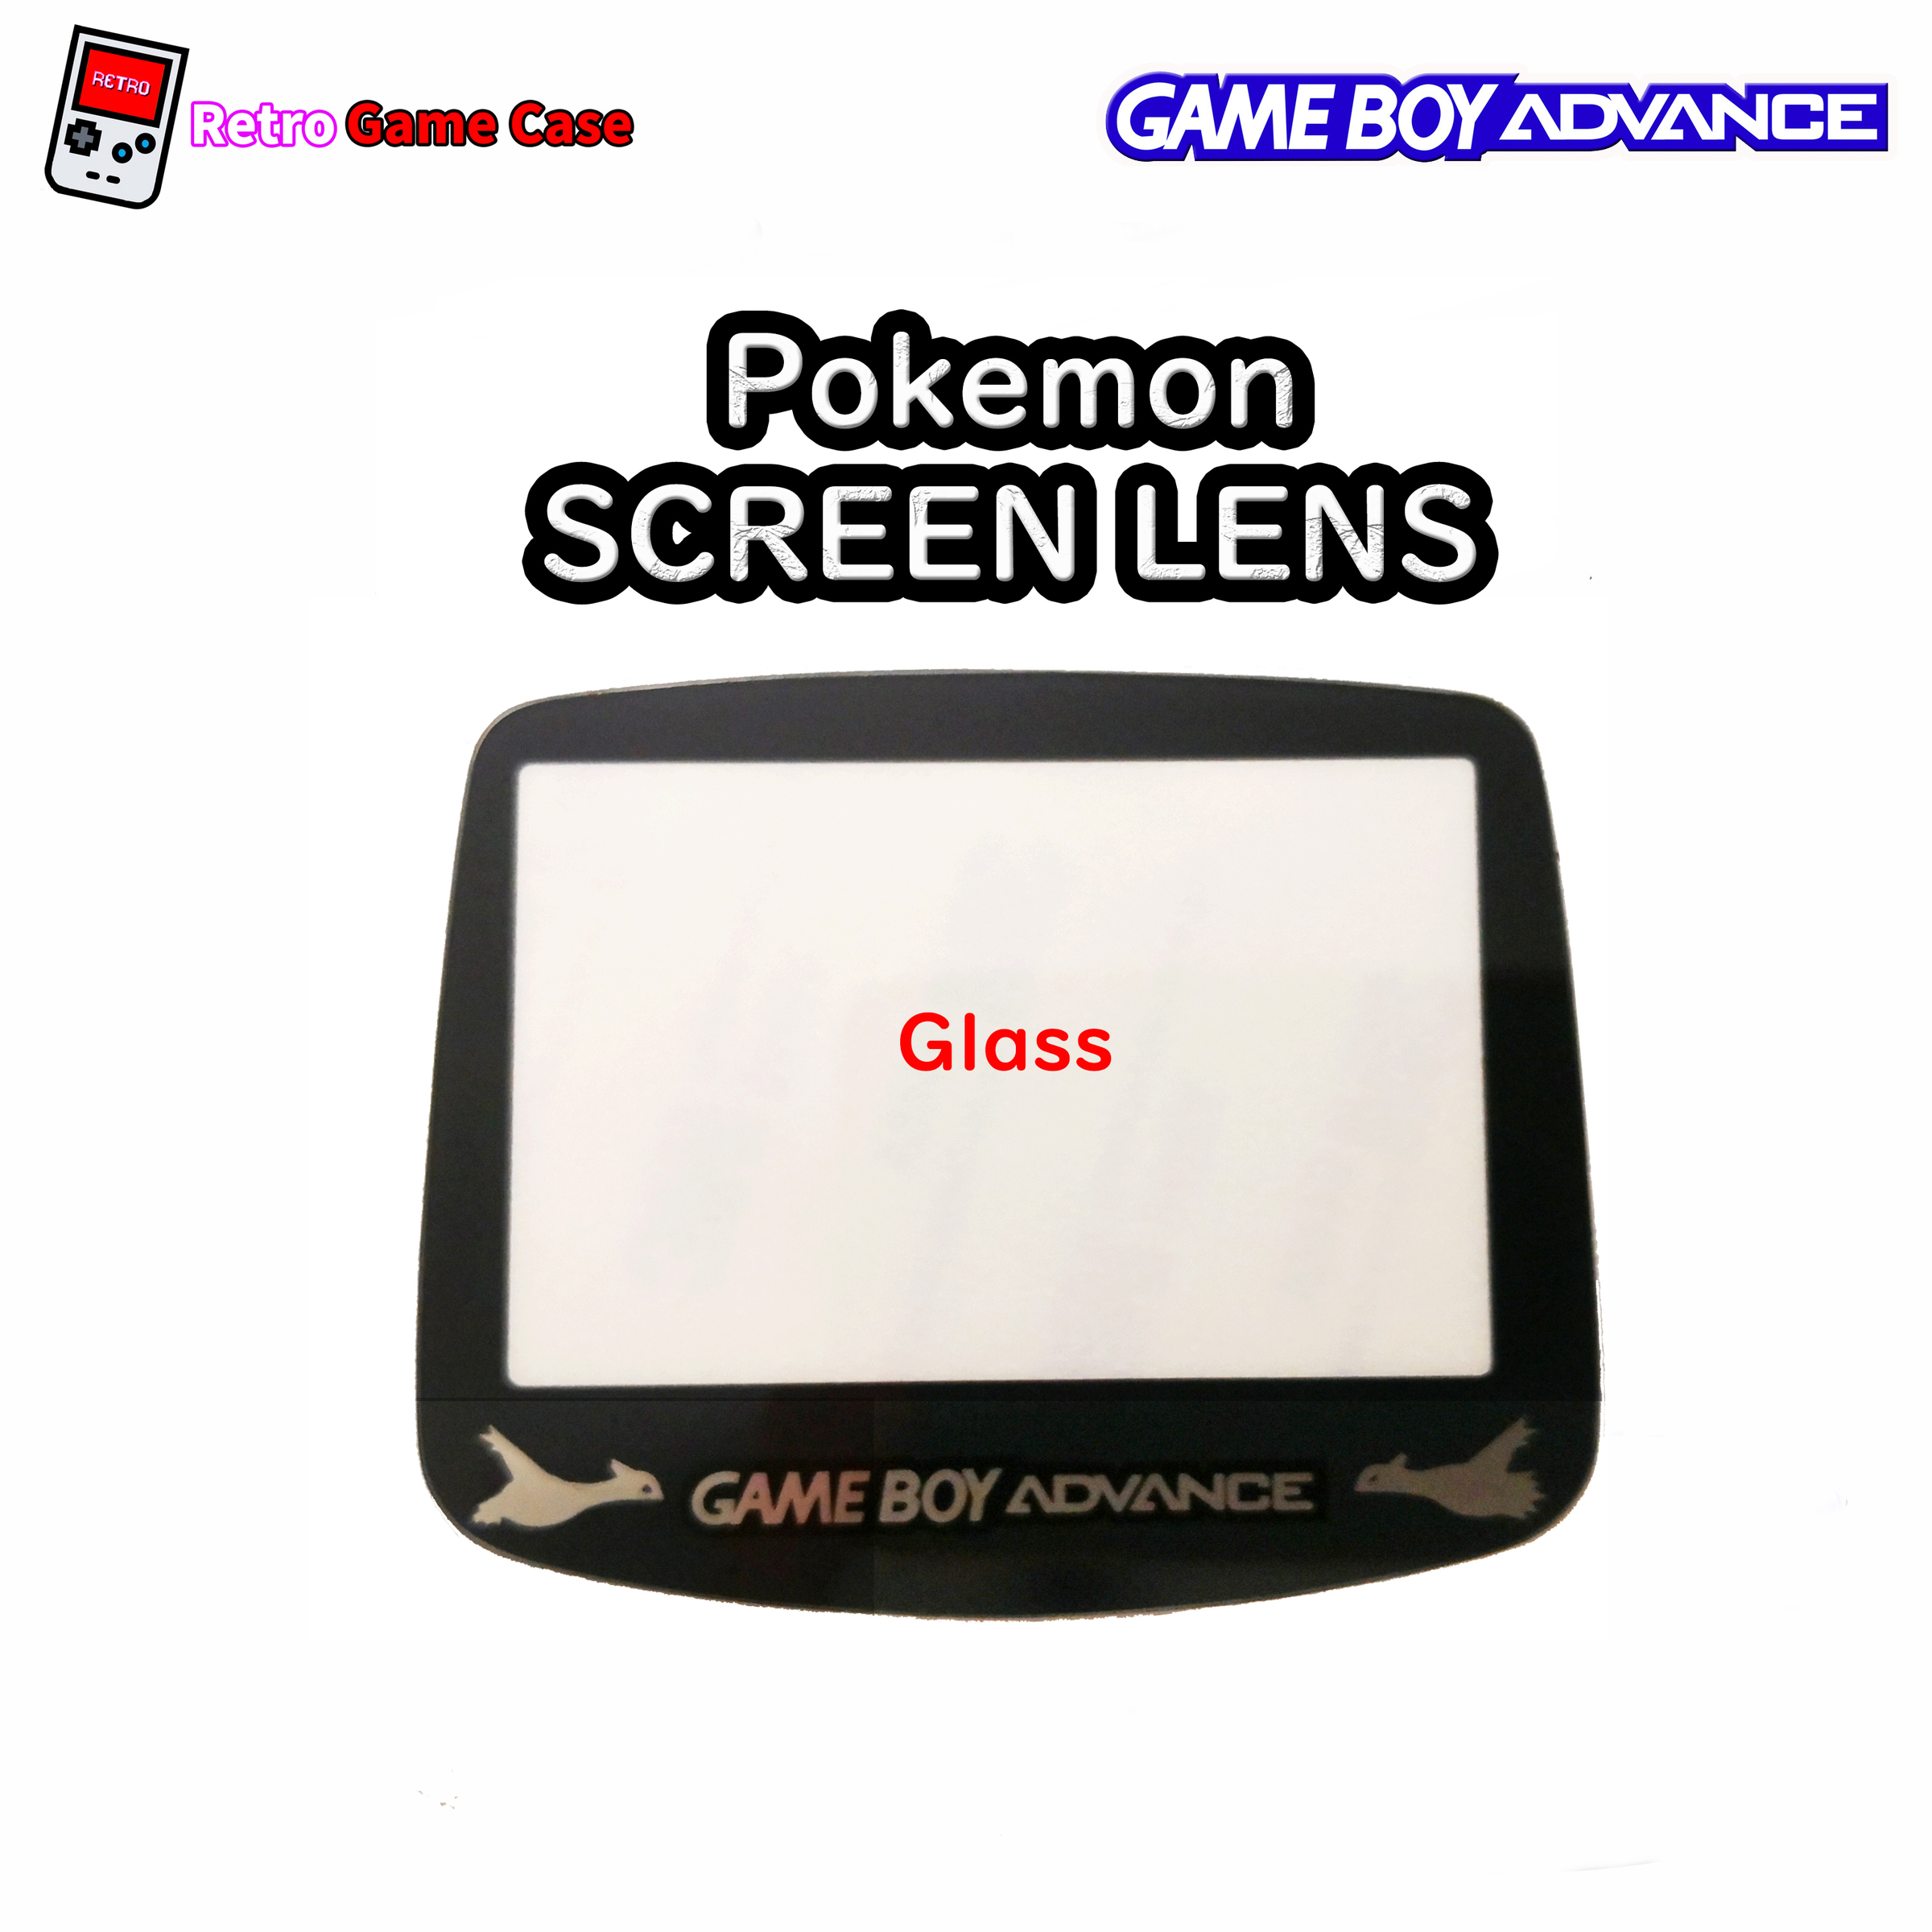 My_retro_game_case_Gameboy_Advance_pokemon_Glass_Screen_Lens.jpg